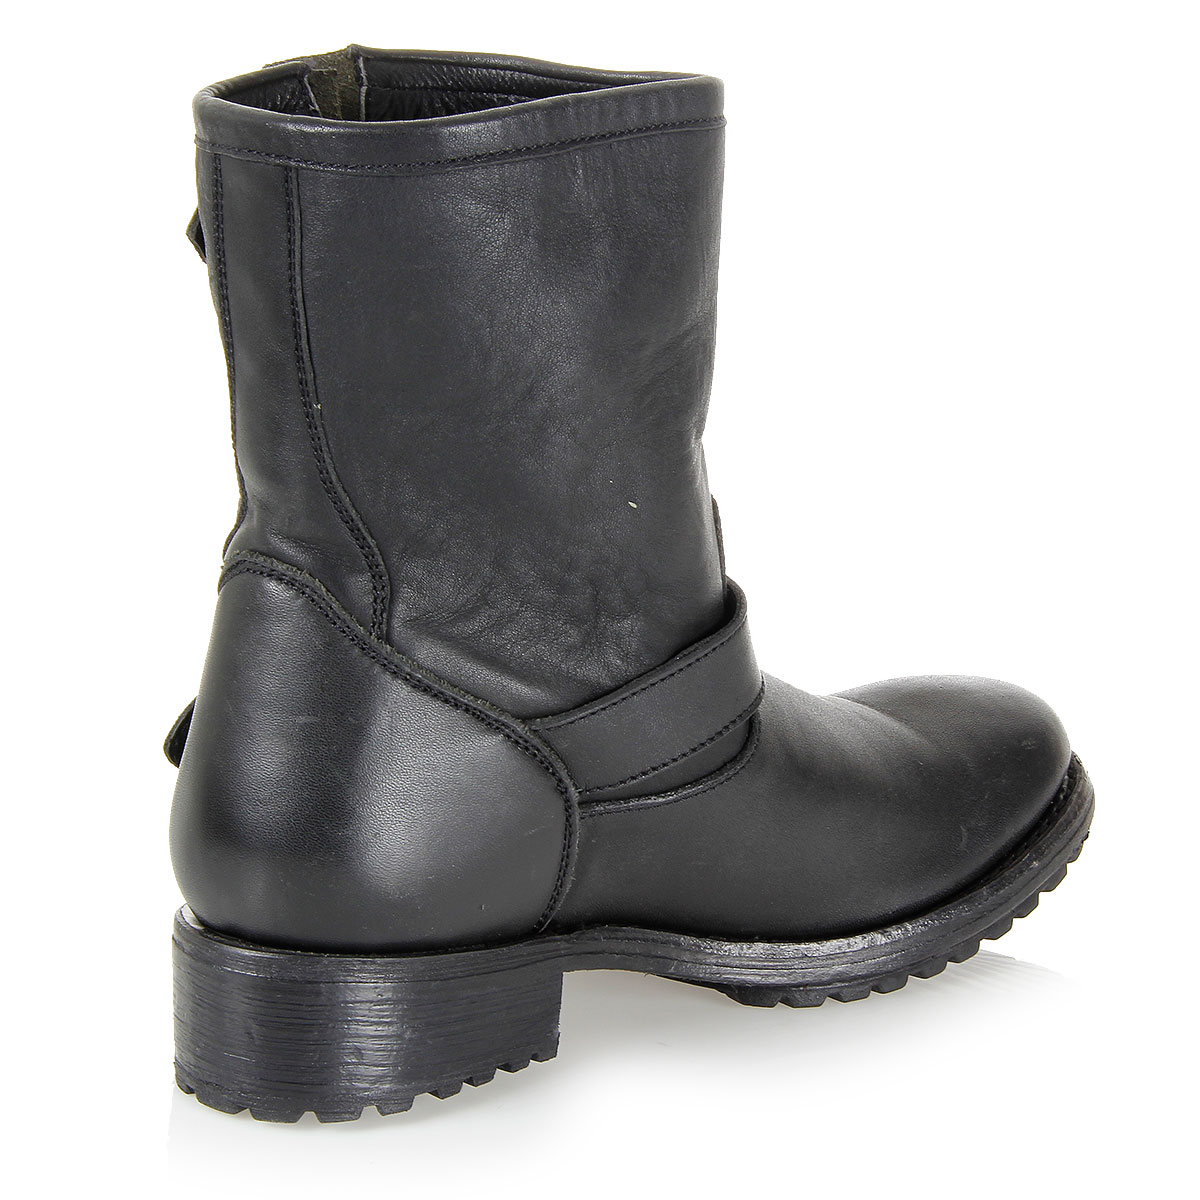 Find great deals on eBay for ugg ankle boots. Shop with confidence. Skip to main content. eBay: Shop by category. Shop by category. Enter your search keyword UGG Australia women's black Classic Mini Leather ankle boots size 8. UGG Australia · US 8.